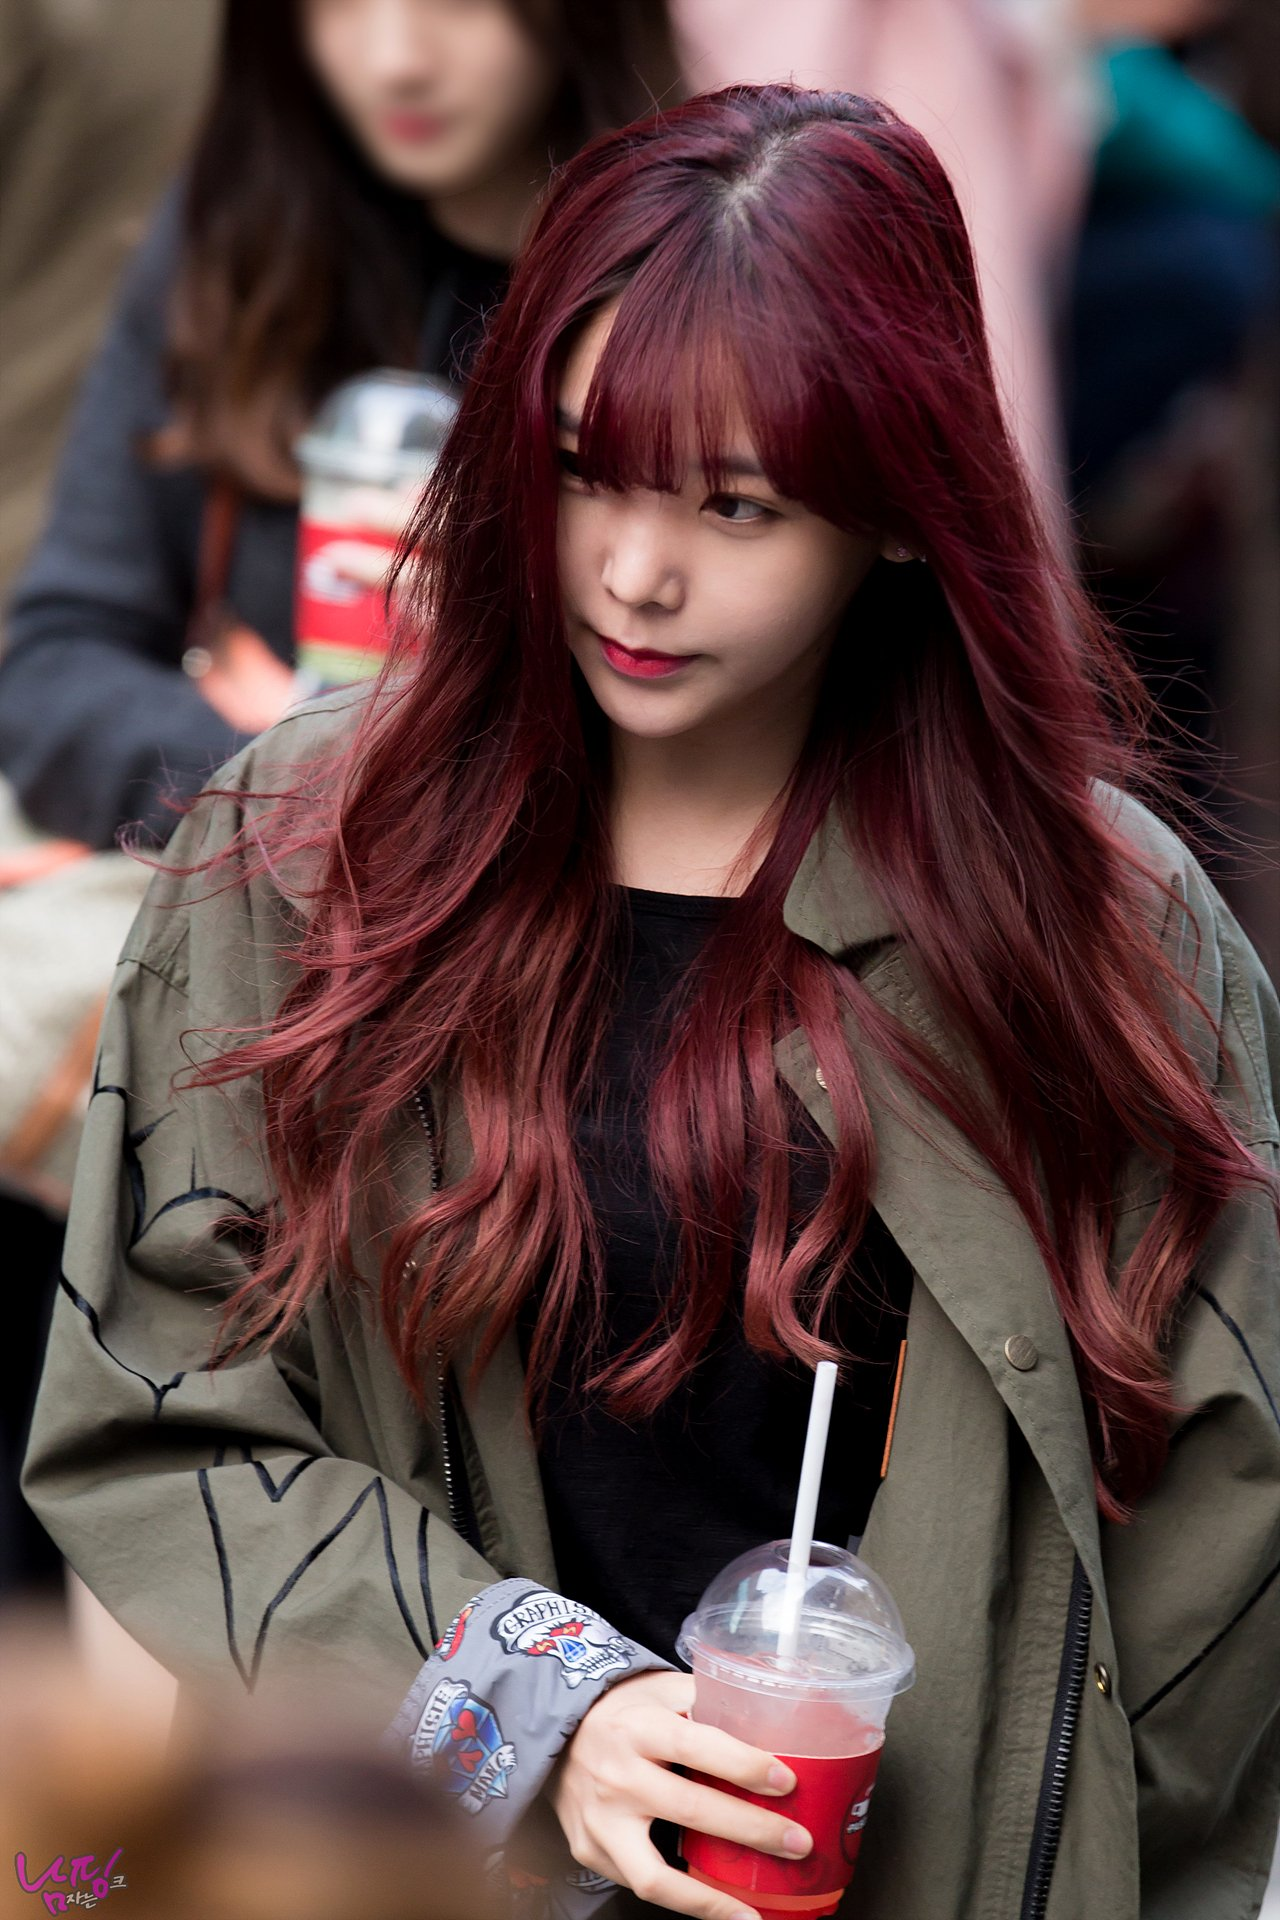 kpop in red hair on Twitter: \u0026quot; *\u3002orange caramel\u002639;s raina *\u3002 https:\/\/t.co\/9LaWSx8540\u0026quot;